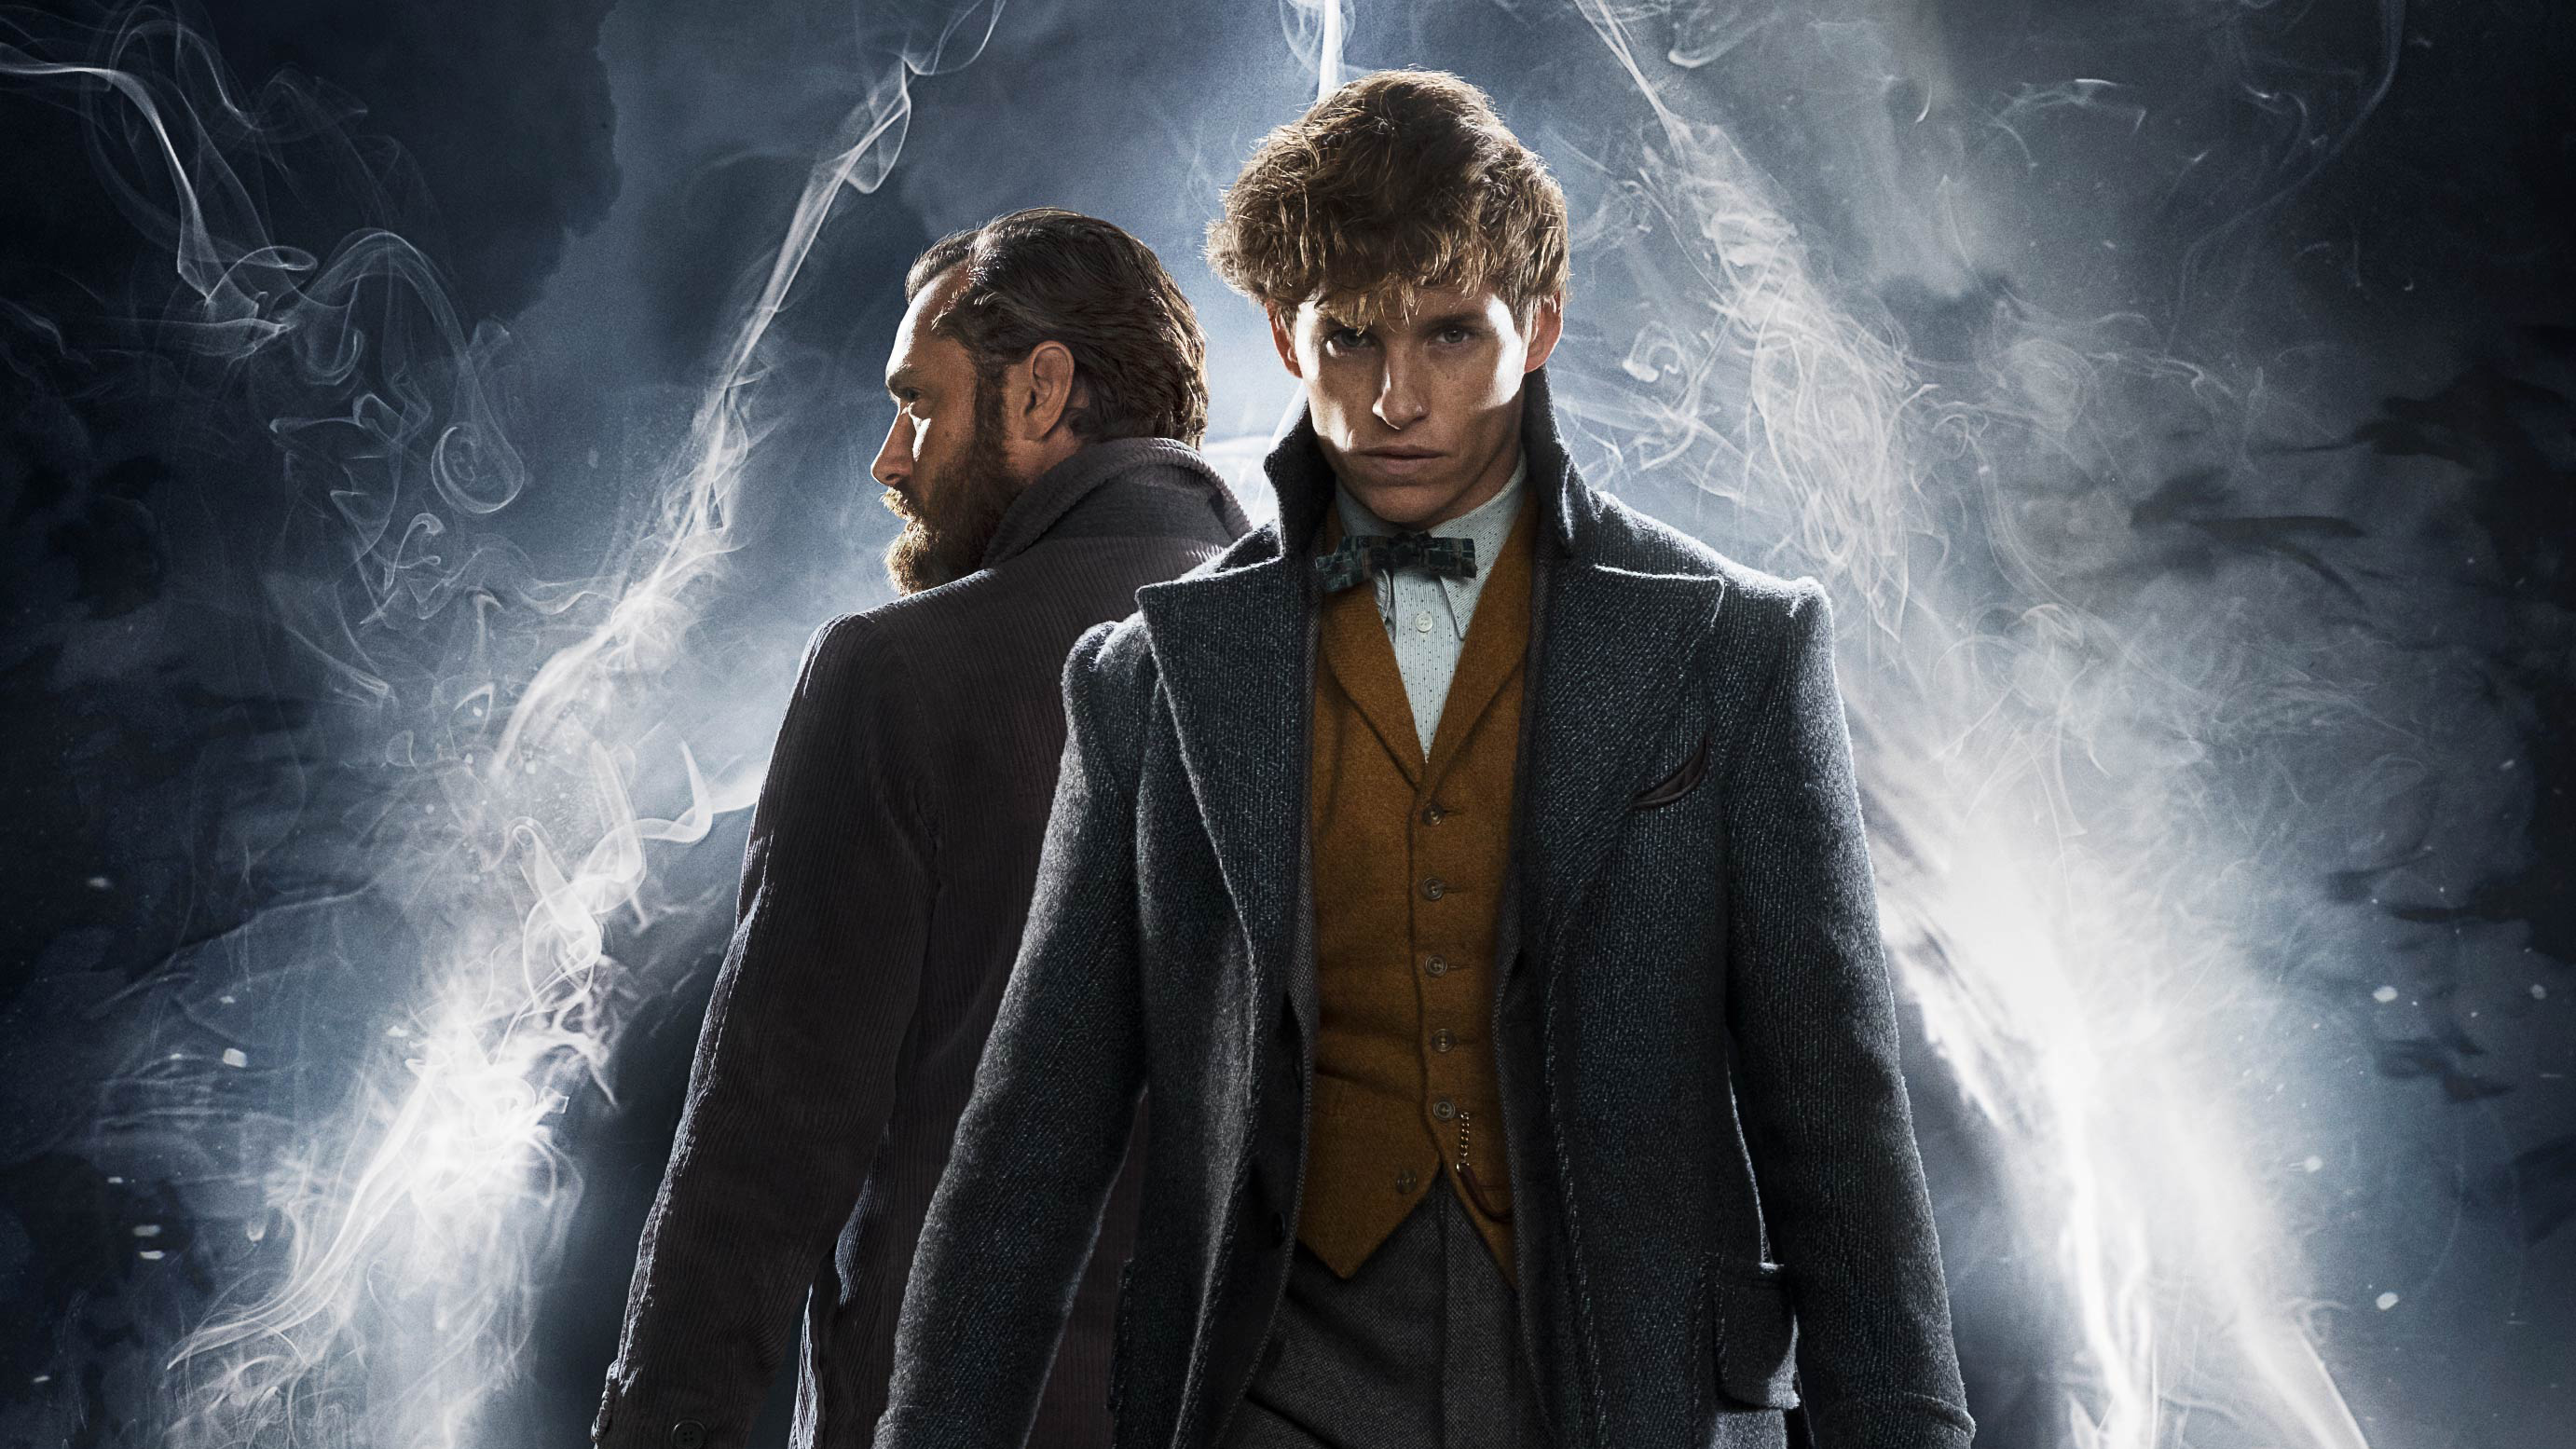 fantastic beasts the crimes of grindelwald, hd movies, 4k wallpapers